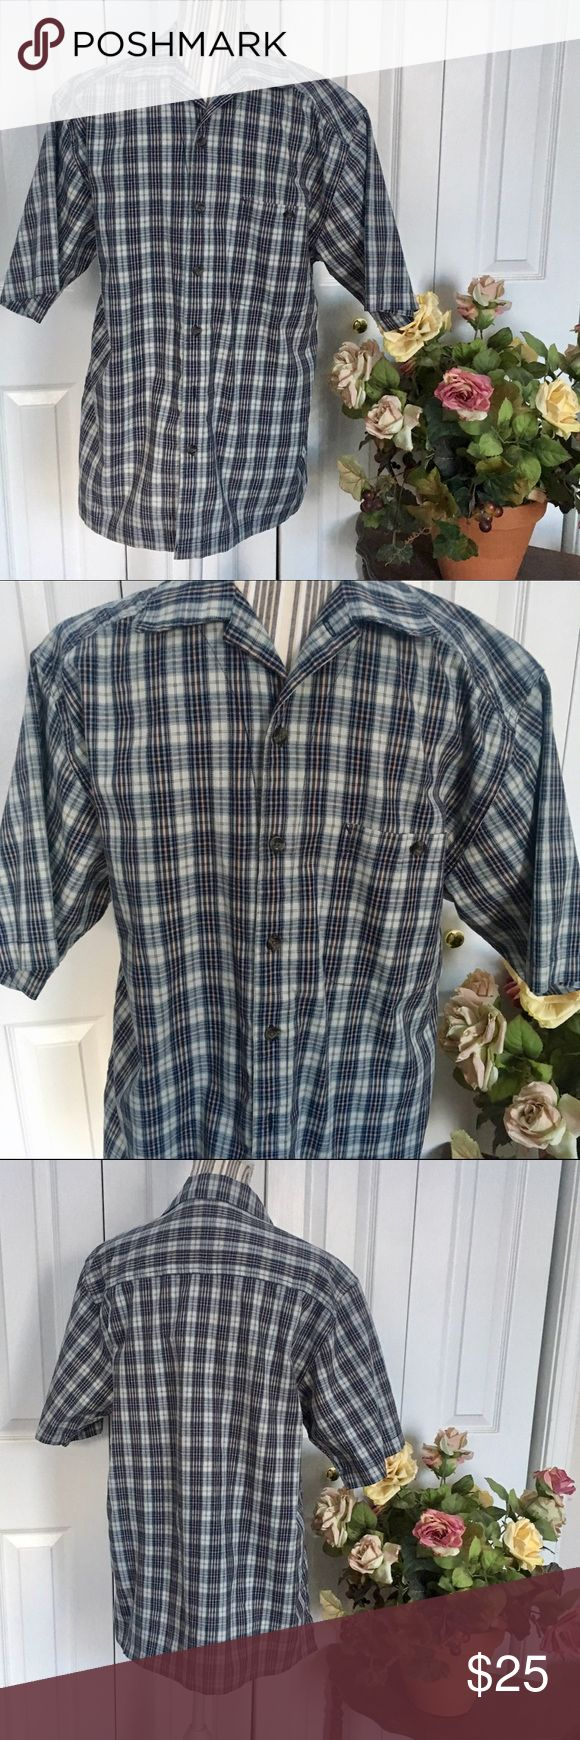 WOLVERINE Men's short sleeve button up shirt This Men's Wolverine short sleeve button up shirt is in blue check with an orange accent throughout.   Front patch button pocket on breast.   Size M.   EUC, no flaws.  Bundle discount in my closet💕 Wolverine Shirts Casual Button Down Shirts